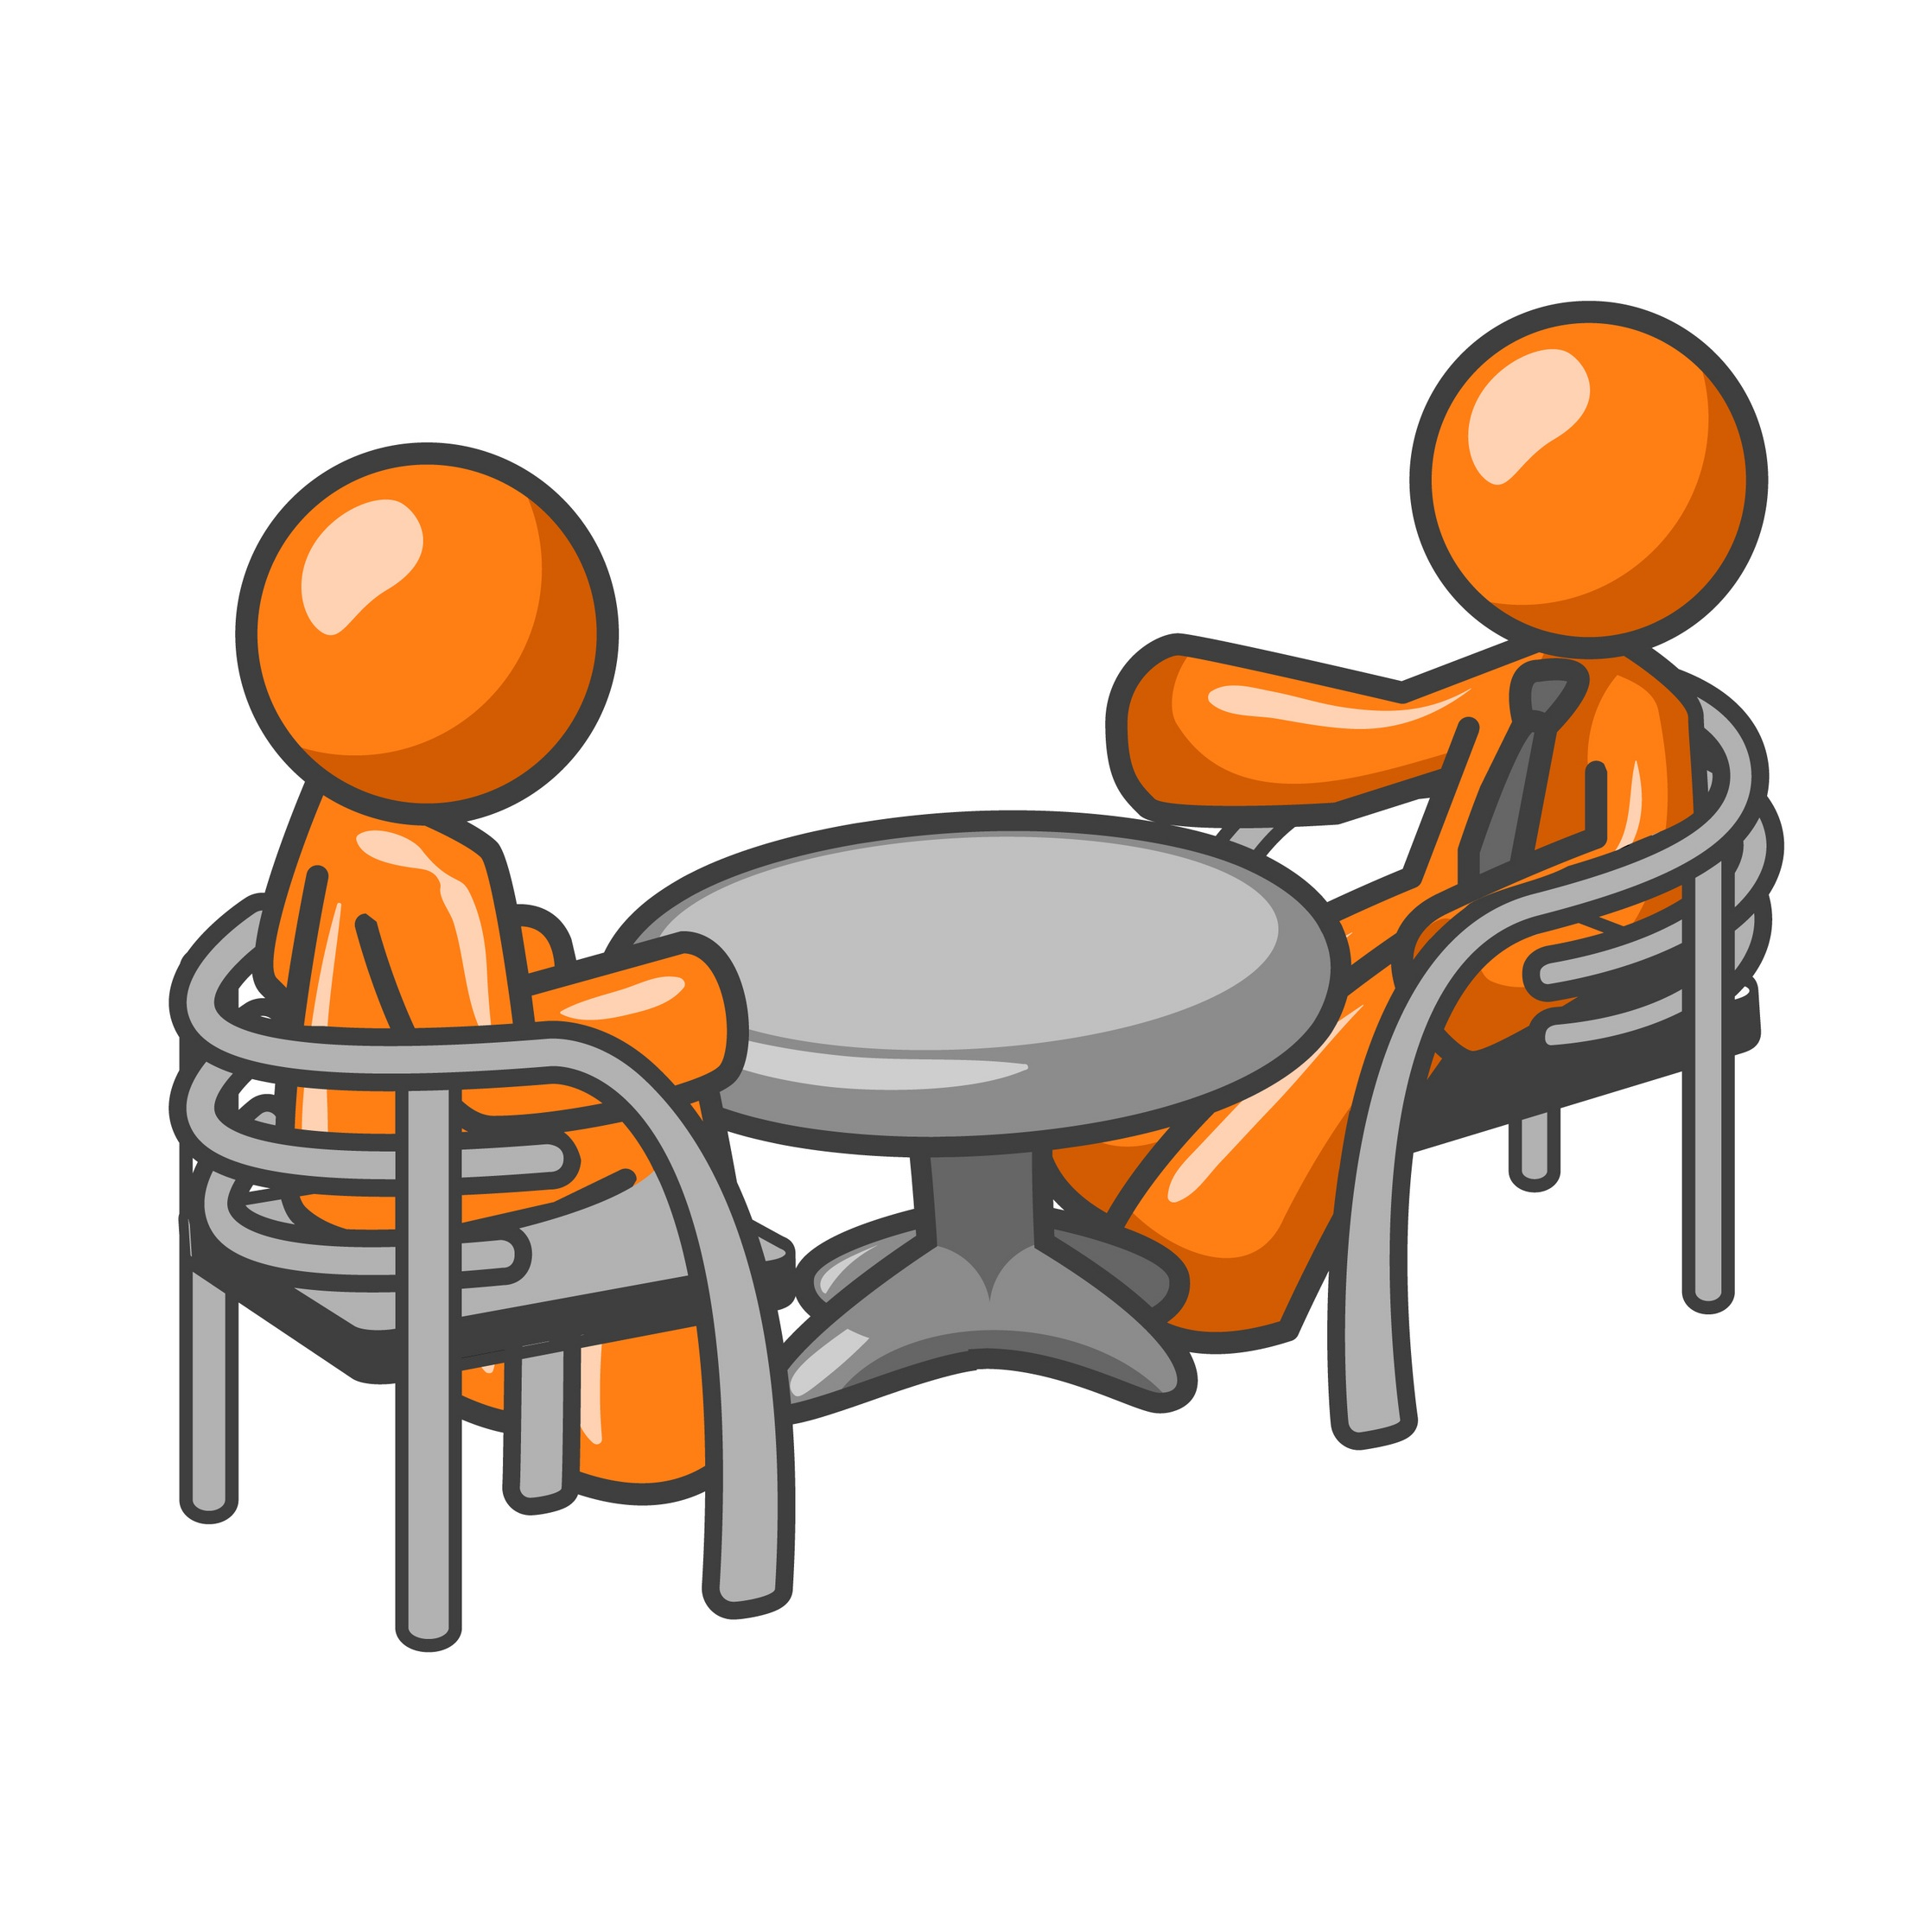 2236x2236 Interview Clip Art Clipart Collection